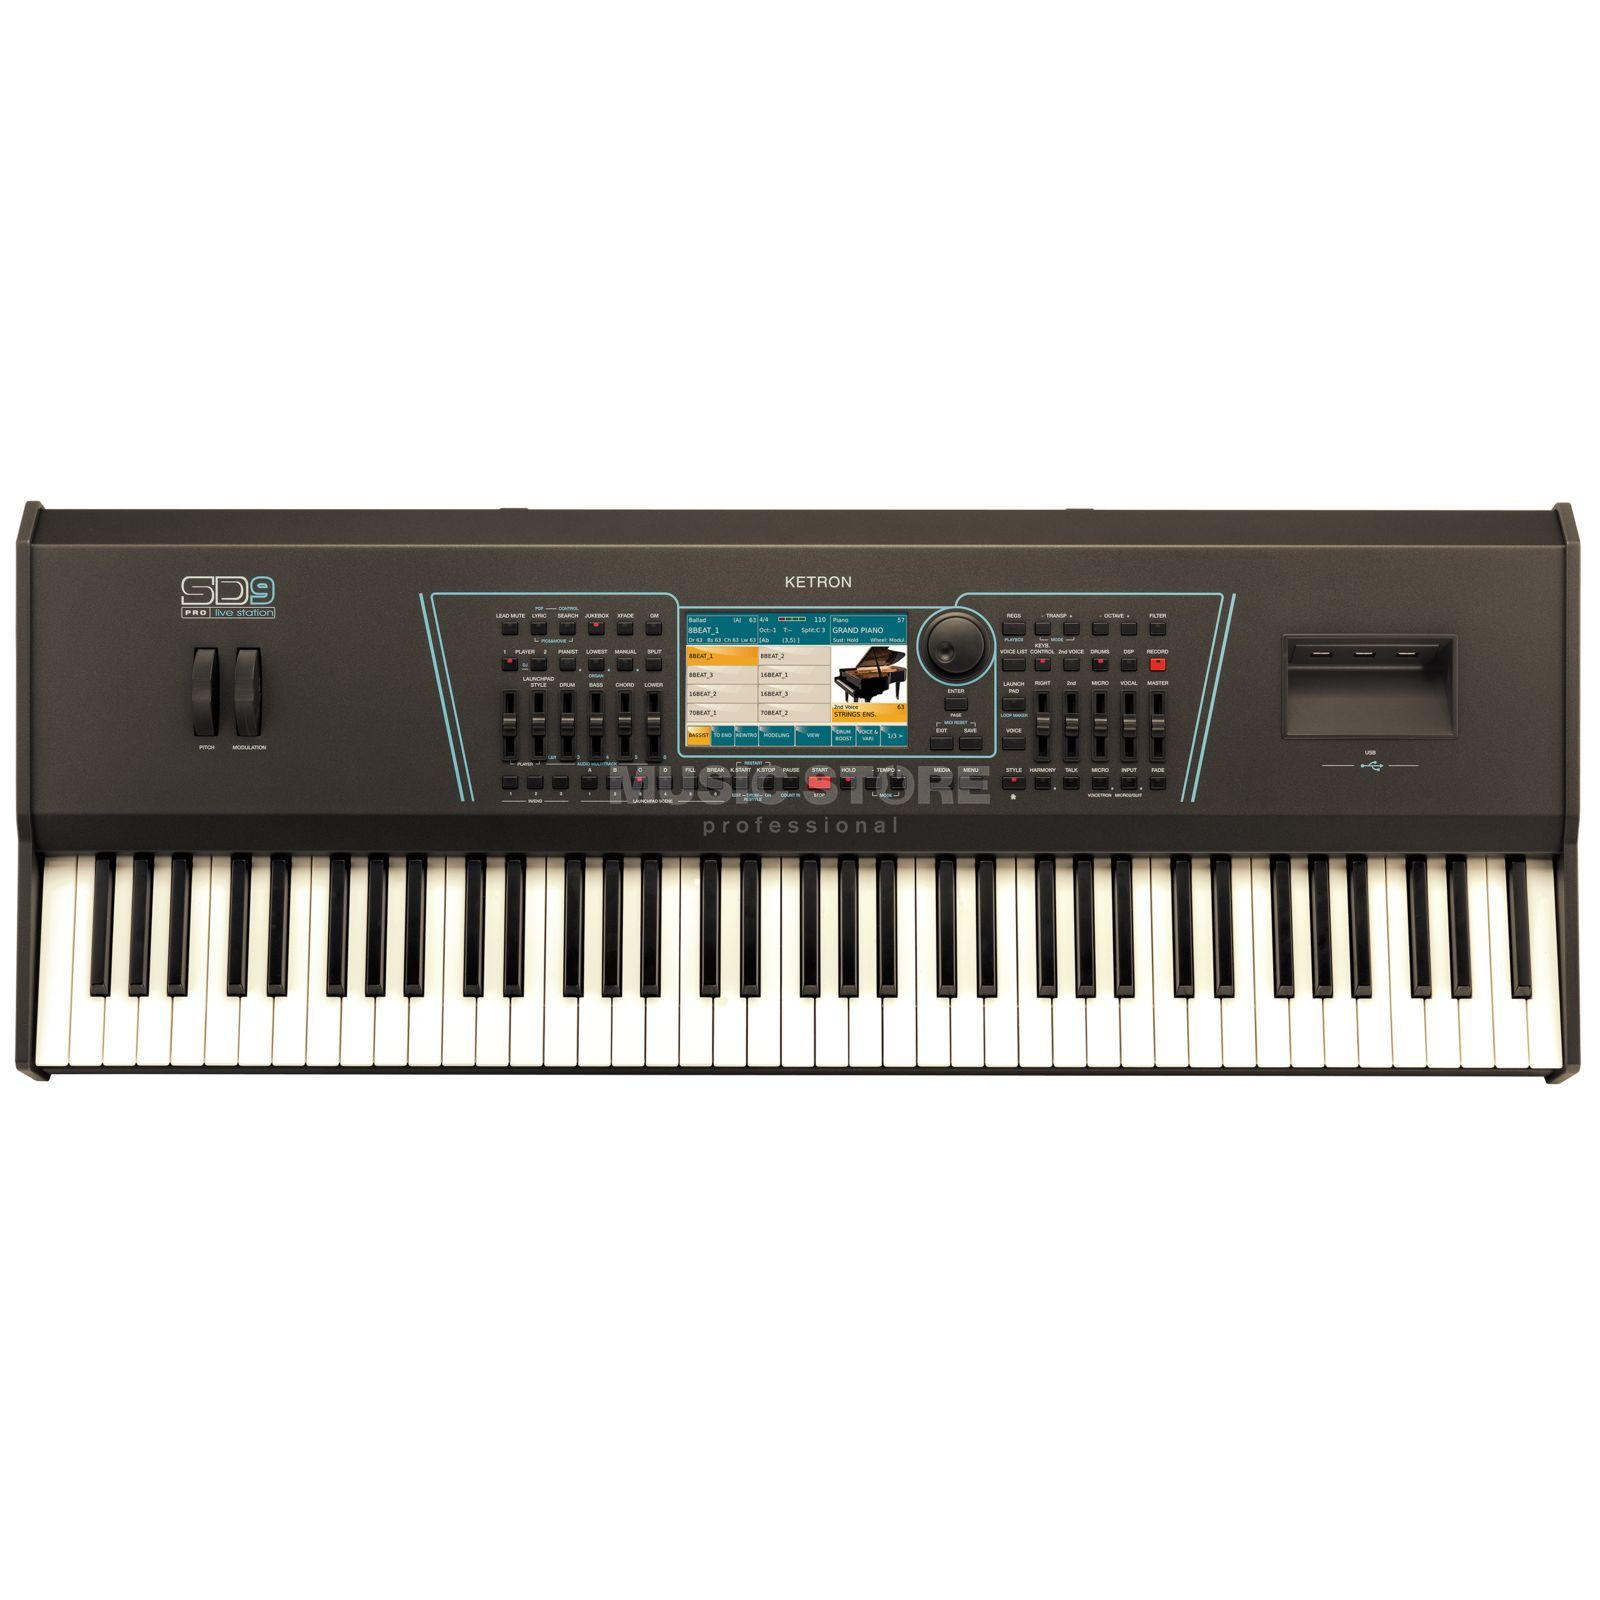 Ketron SD9 Entertainer Keyboard Produktbillede